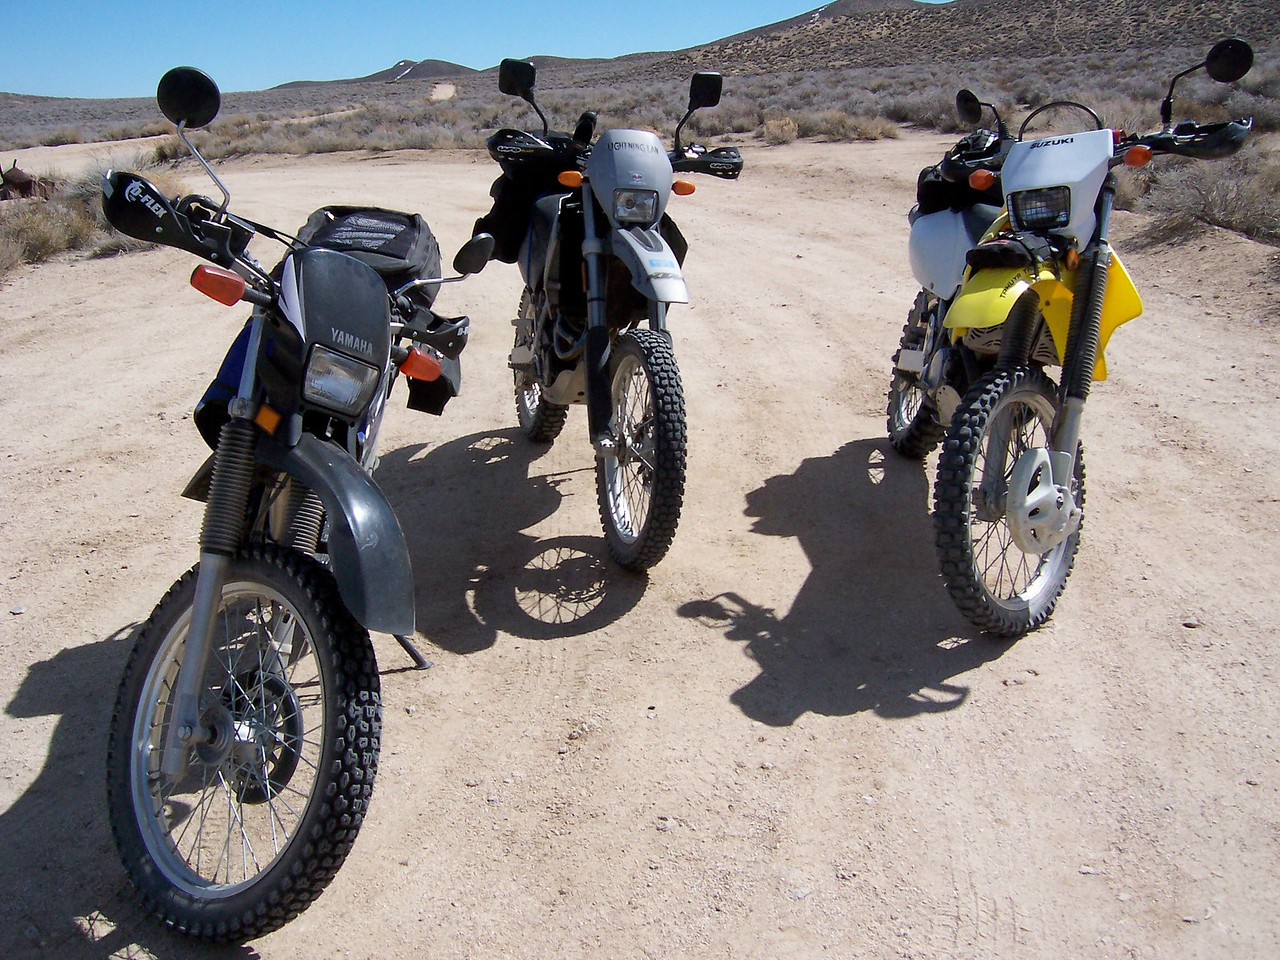 These bikes worked out to be good choices for what we rode..